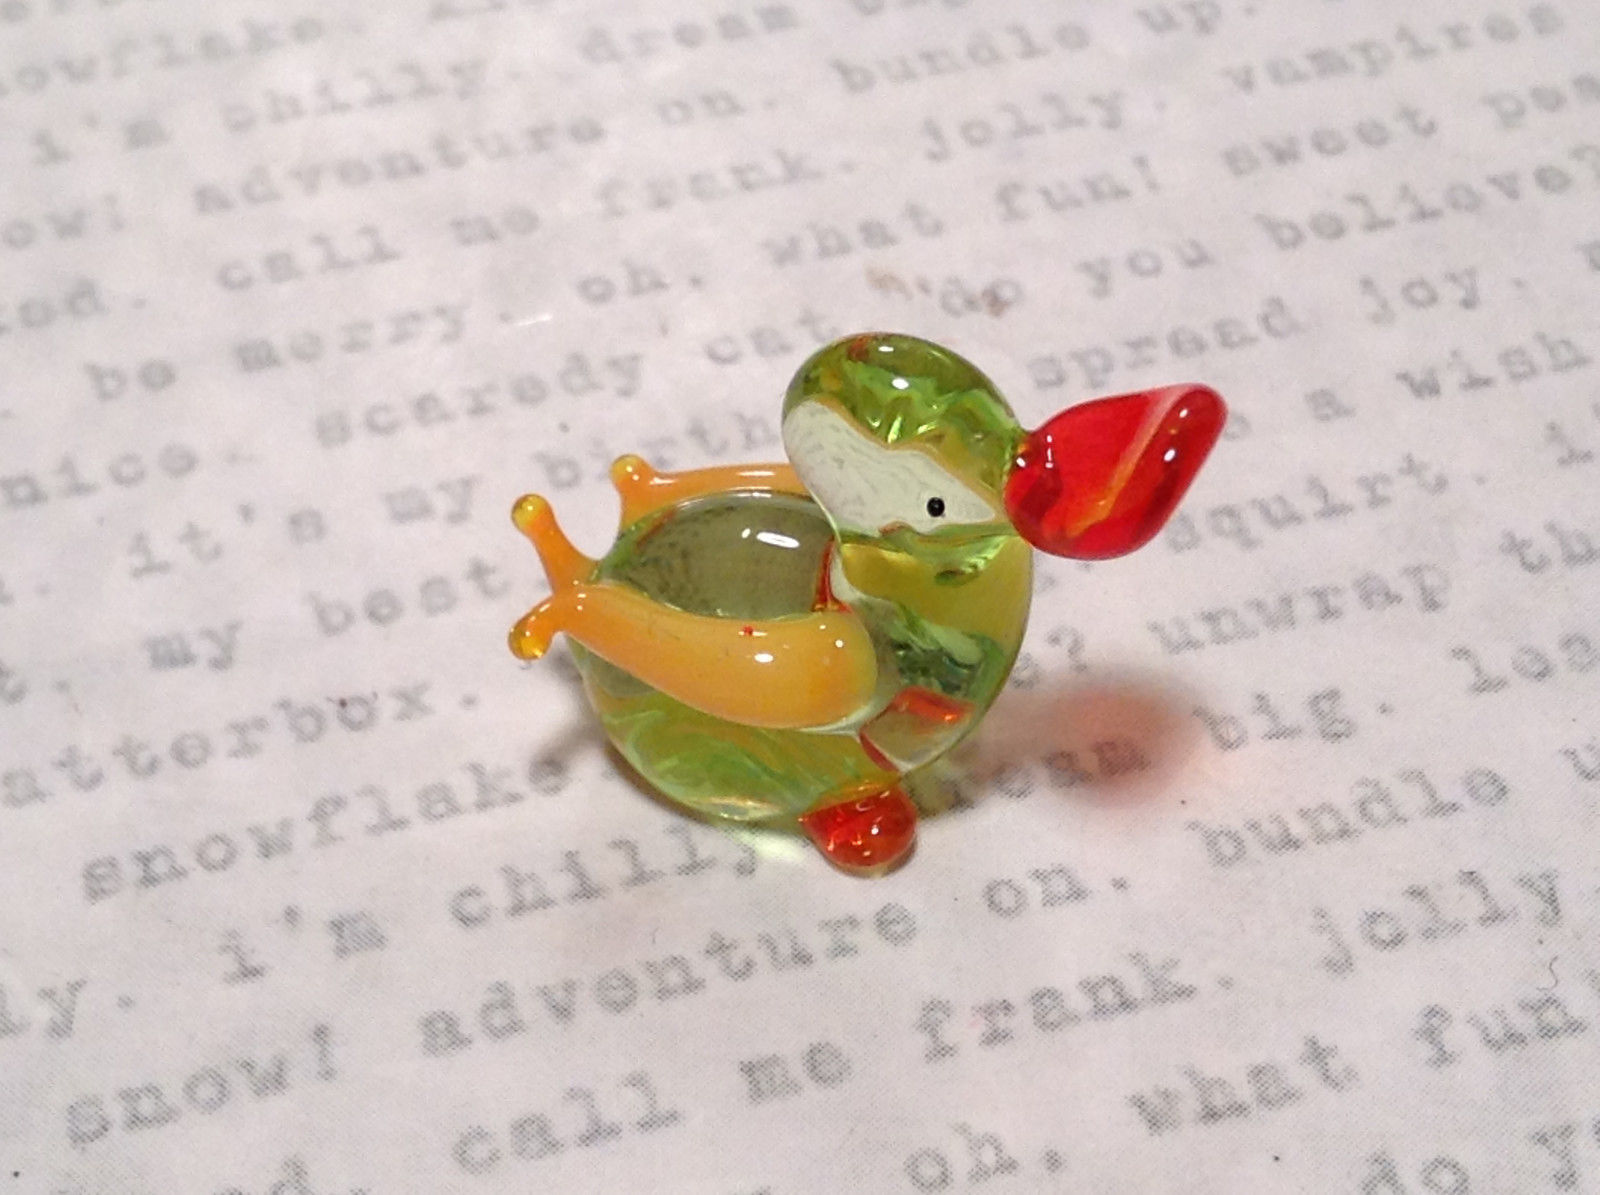 Cute Hand Blown Glass Mini Figurine Light Green and Yellow Duck Made in USA